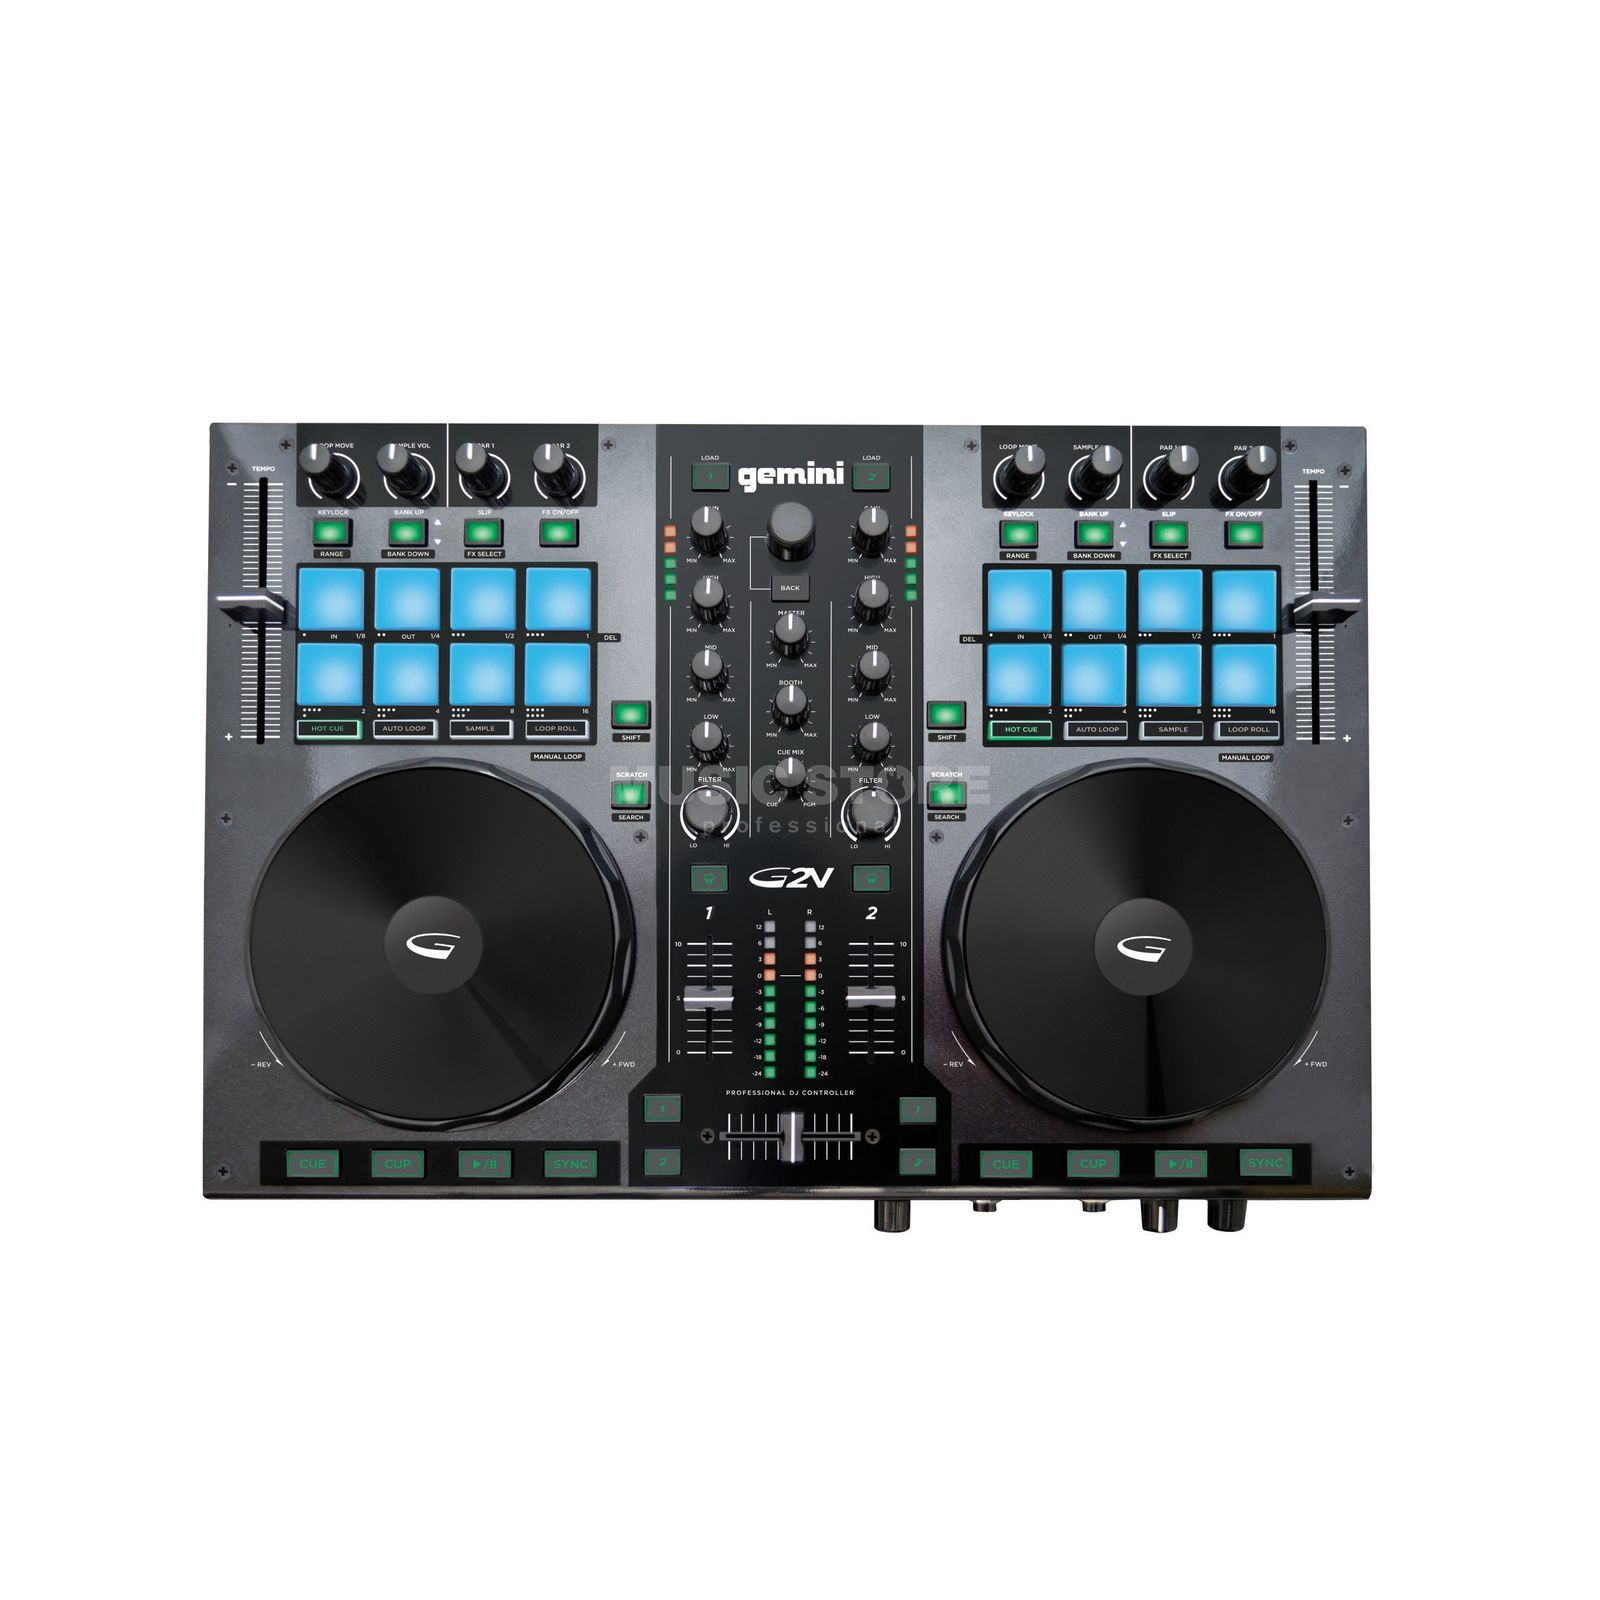 Gemini G2V 2 Channel DJ-Controller Product Image